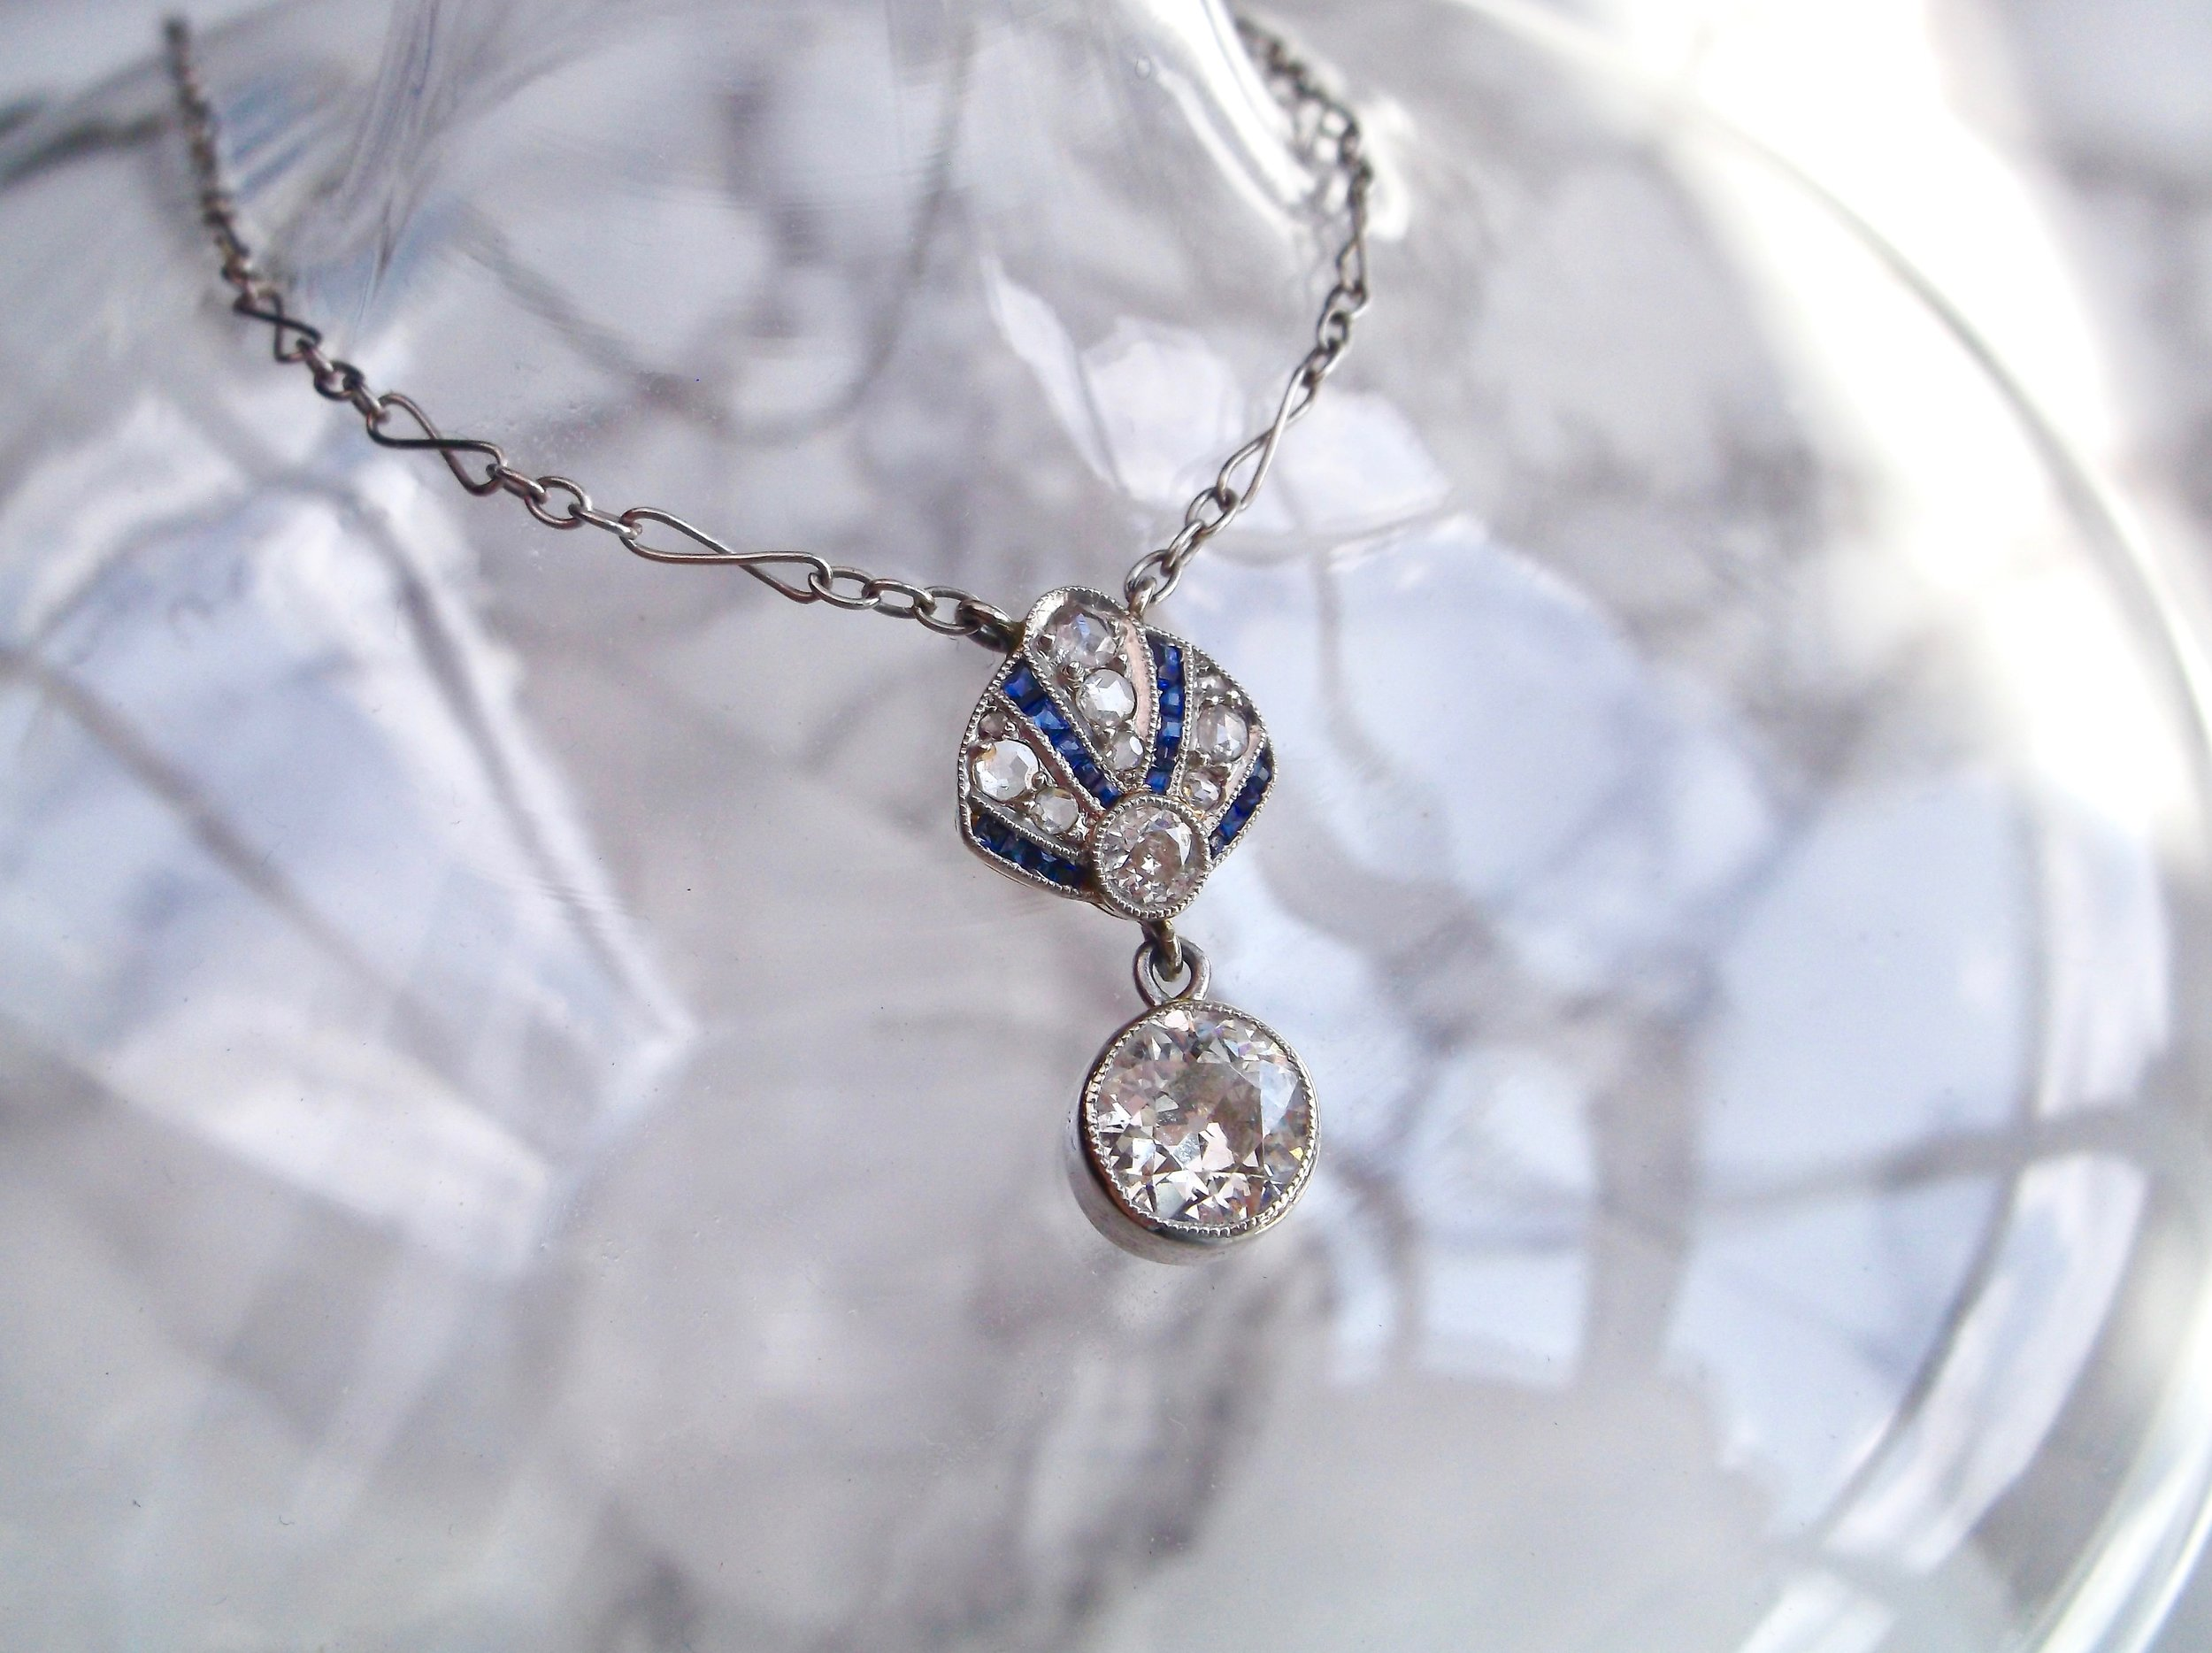 Dress it up or dress it down, this stunning Old European cut diamond pendant with sapphire accents is a showstopper!Shop this fabulous necklace  HERE .